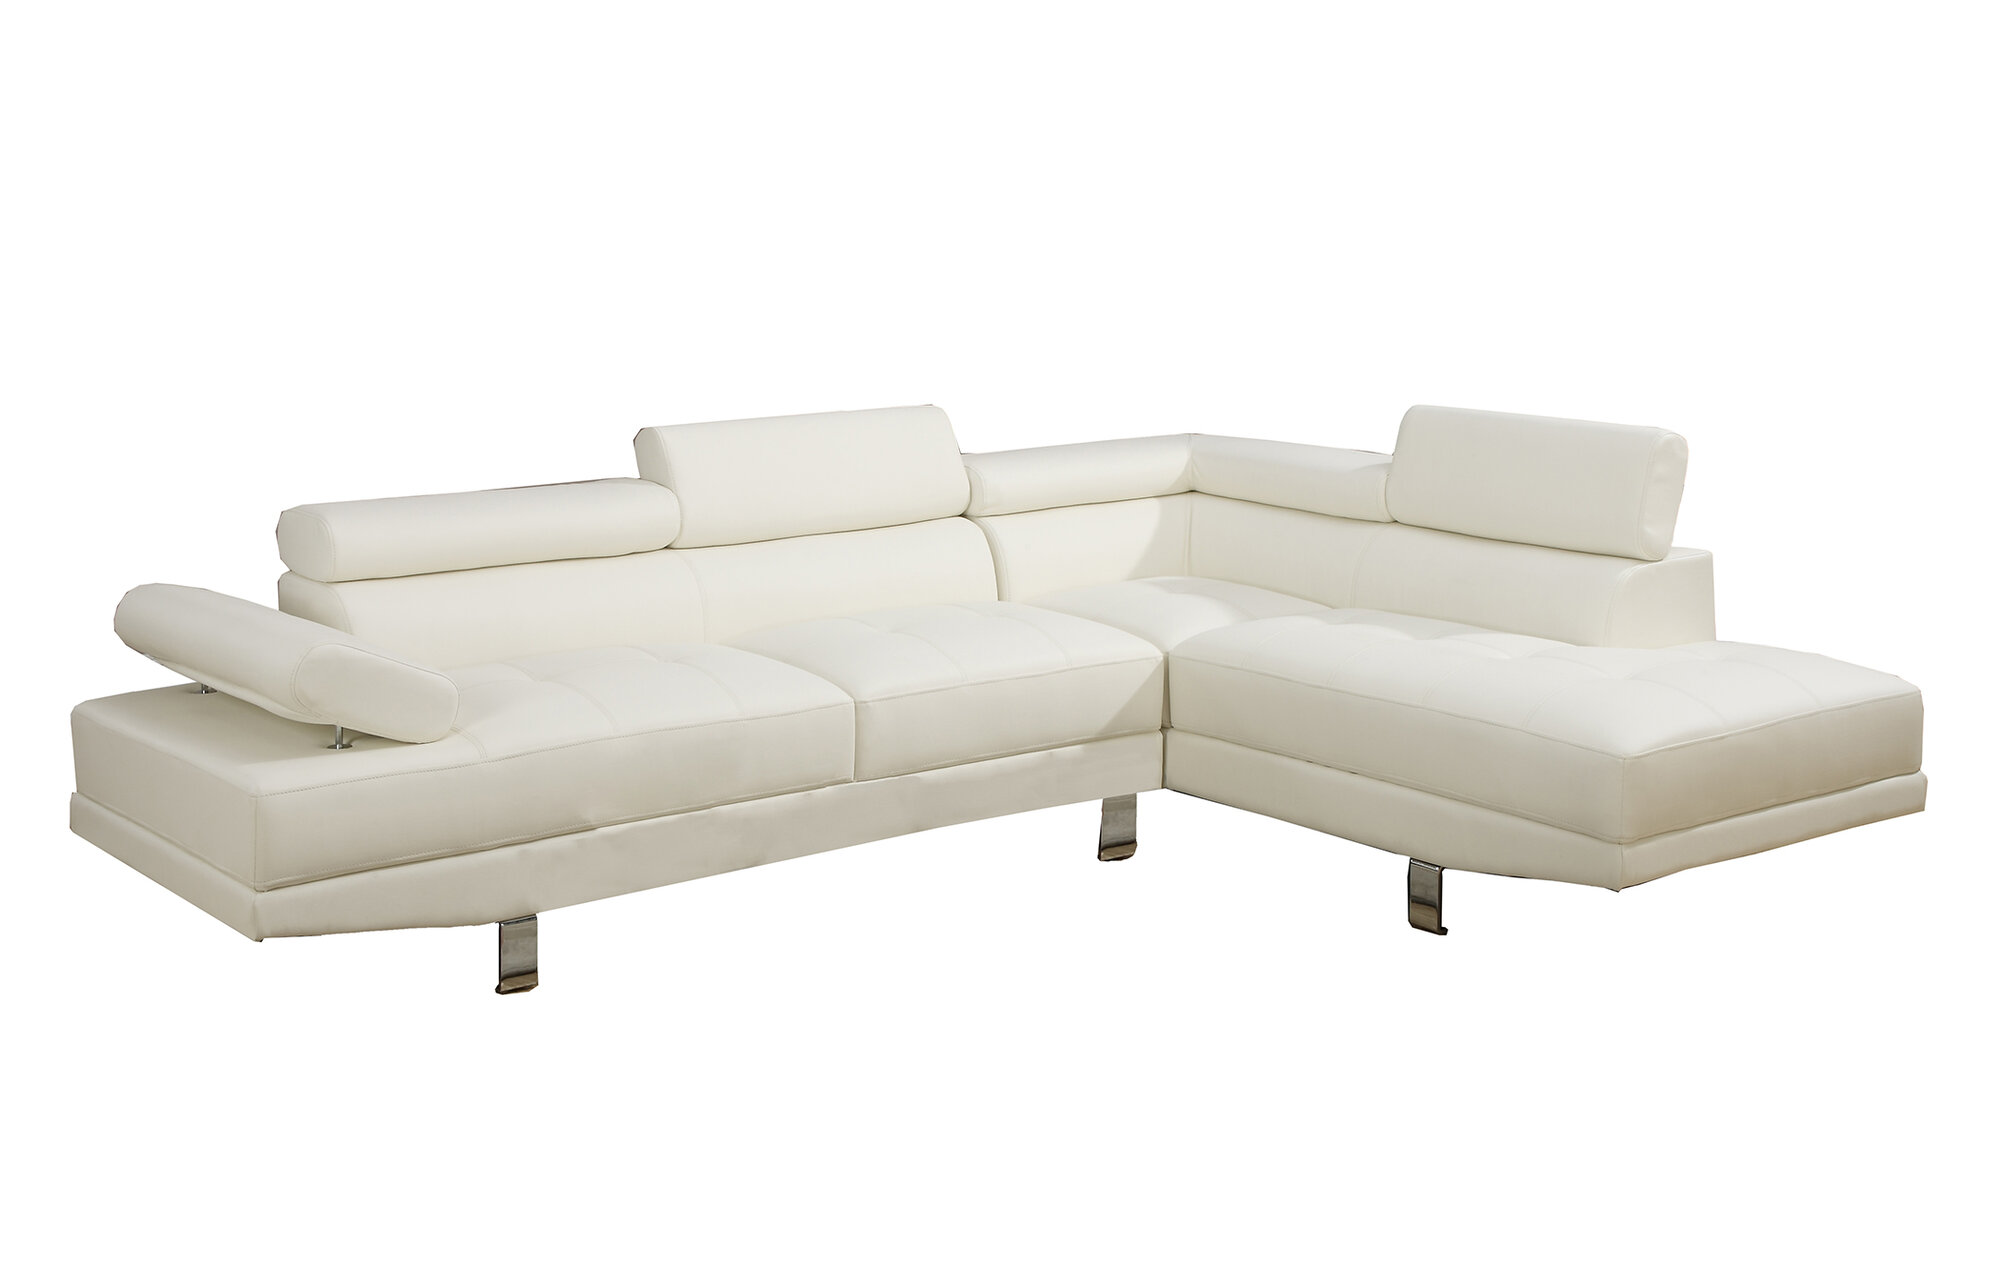 Poundex Bobkona Atlantic Sectional Sofa EBay